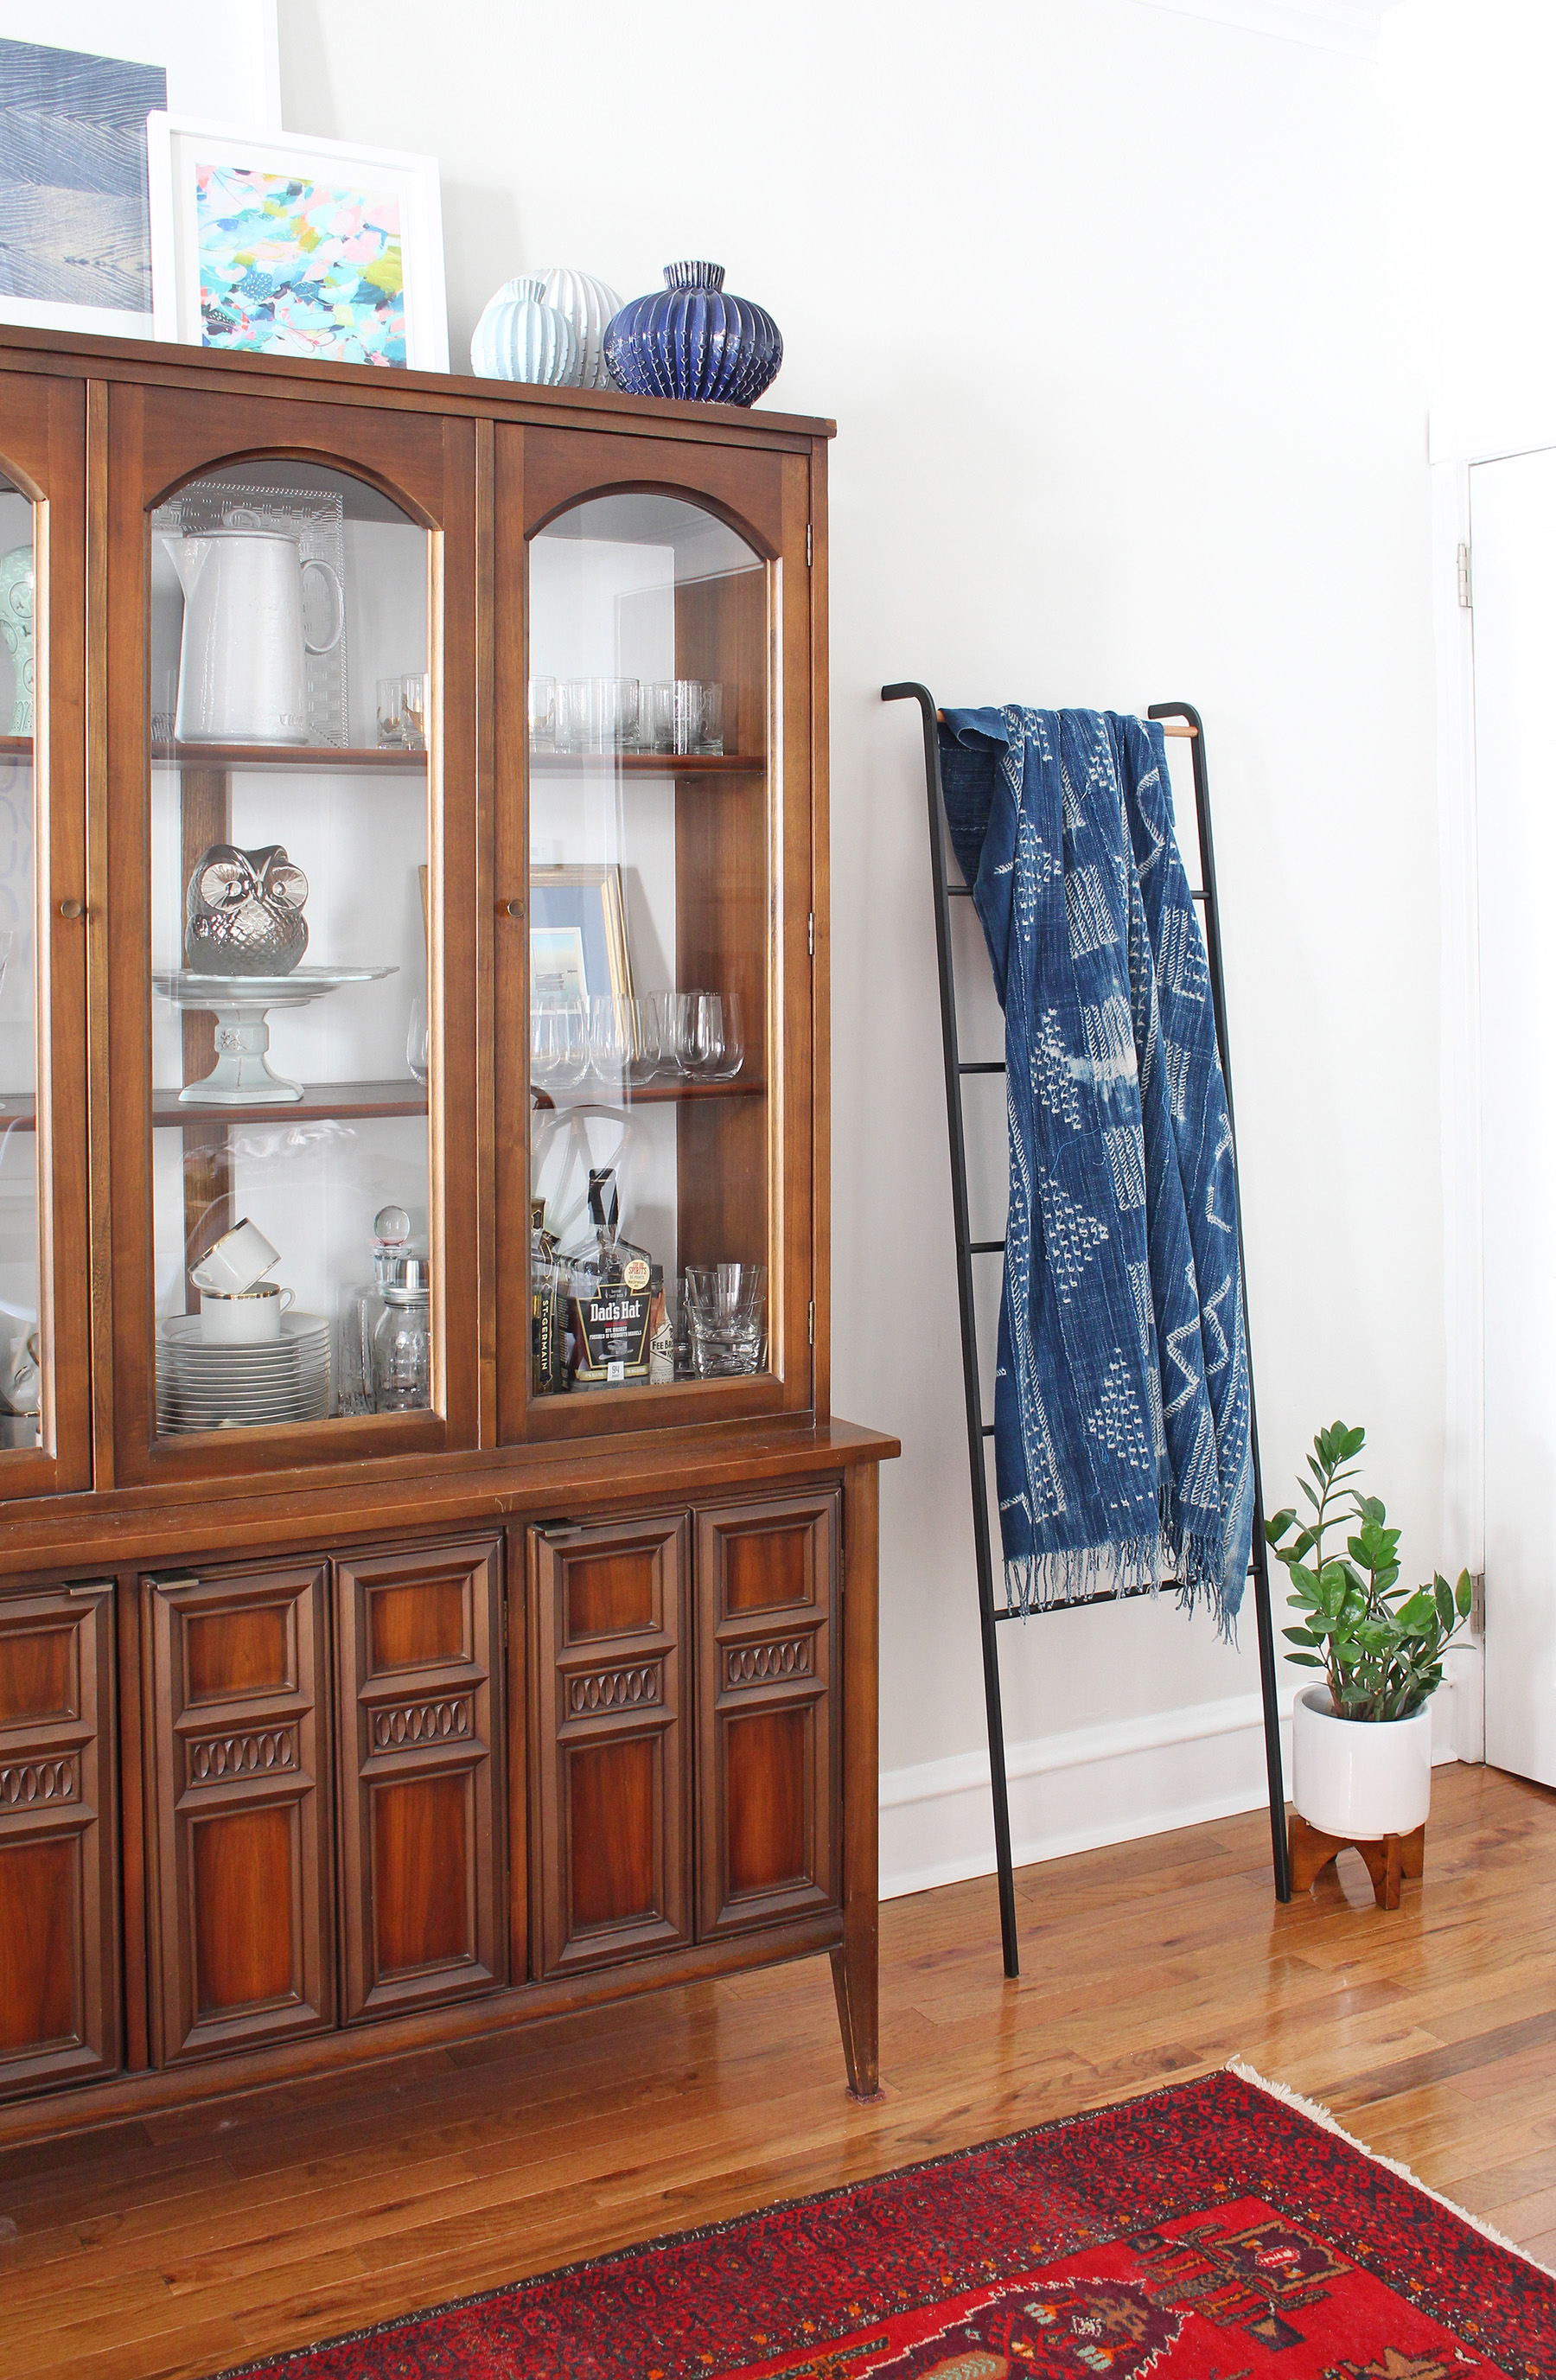 I loved collaborating with Corduroy Company on this little styling project in my dining room! Those charming back of the head prints, abstract art print, and indigo mudcloth work beautifully with my mid-century china cabinet.